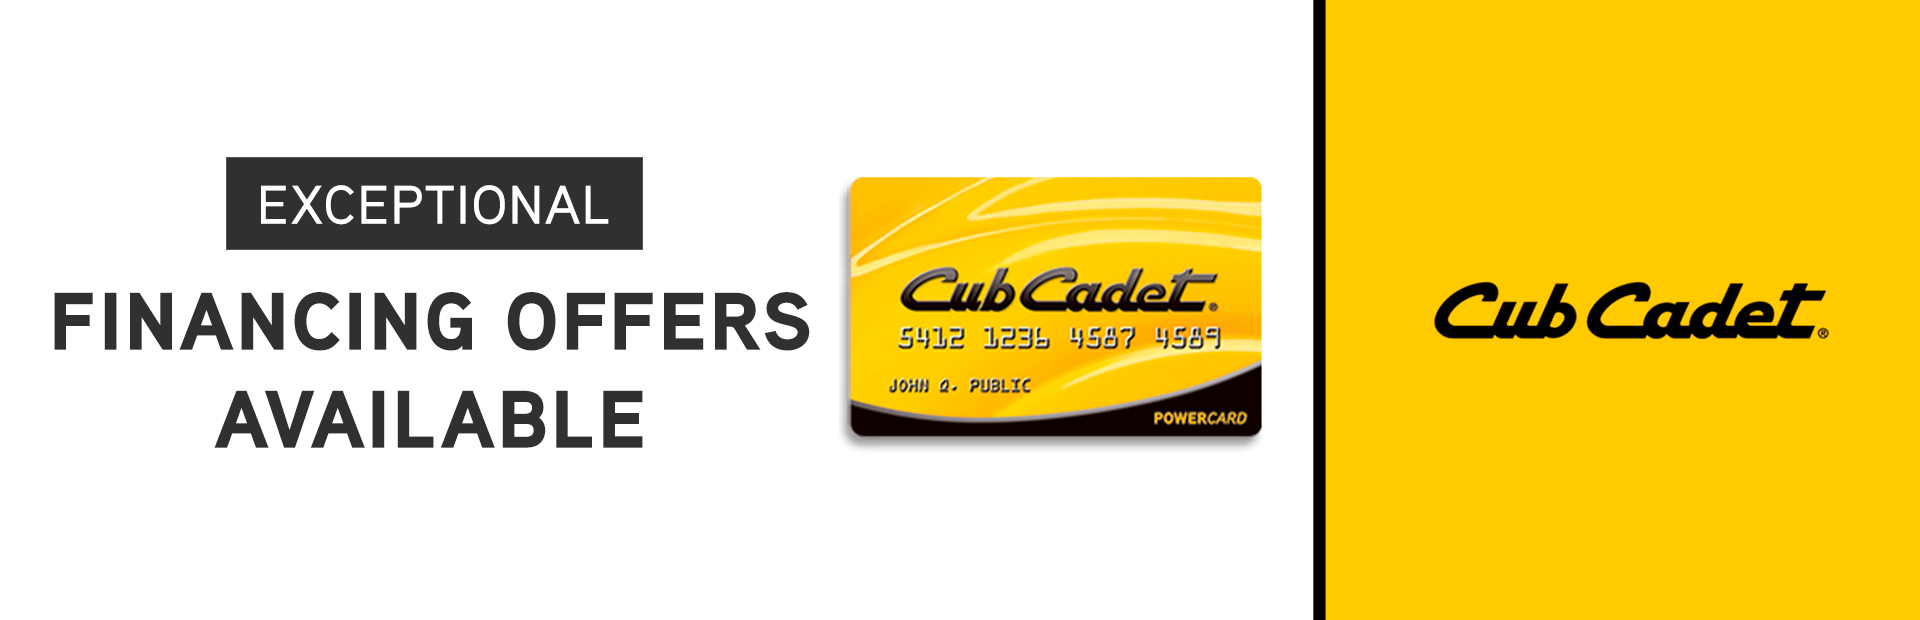 Cub Cadet: EXCEPTIONAL FINANCING OFFERS AVAILABLE